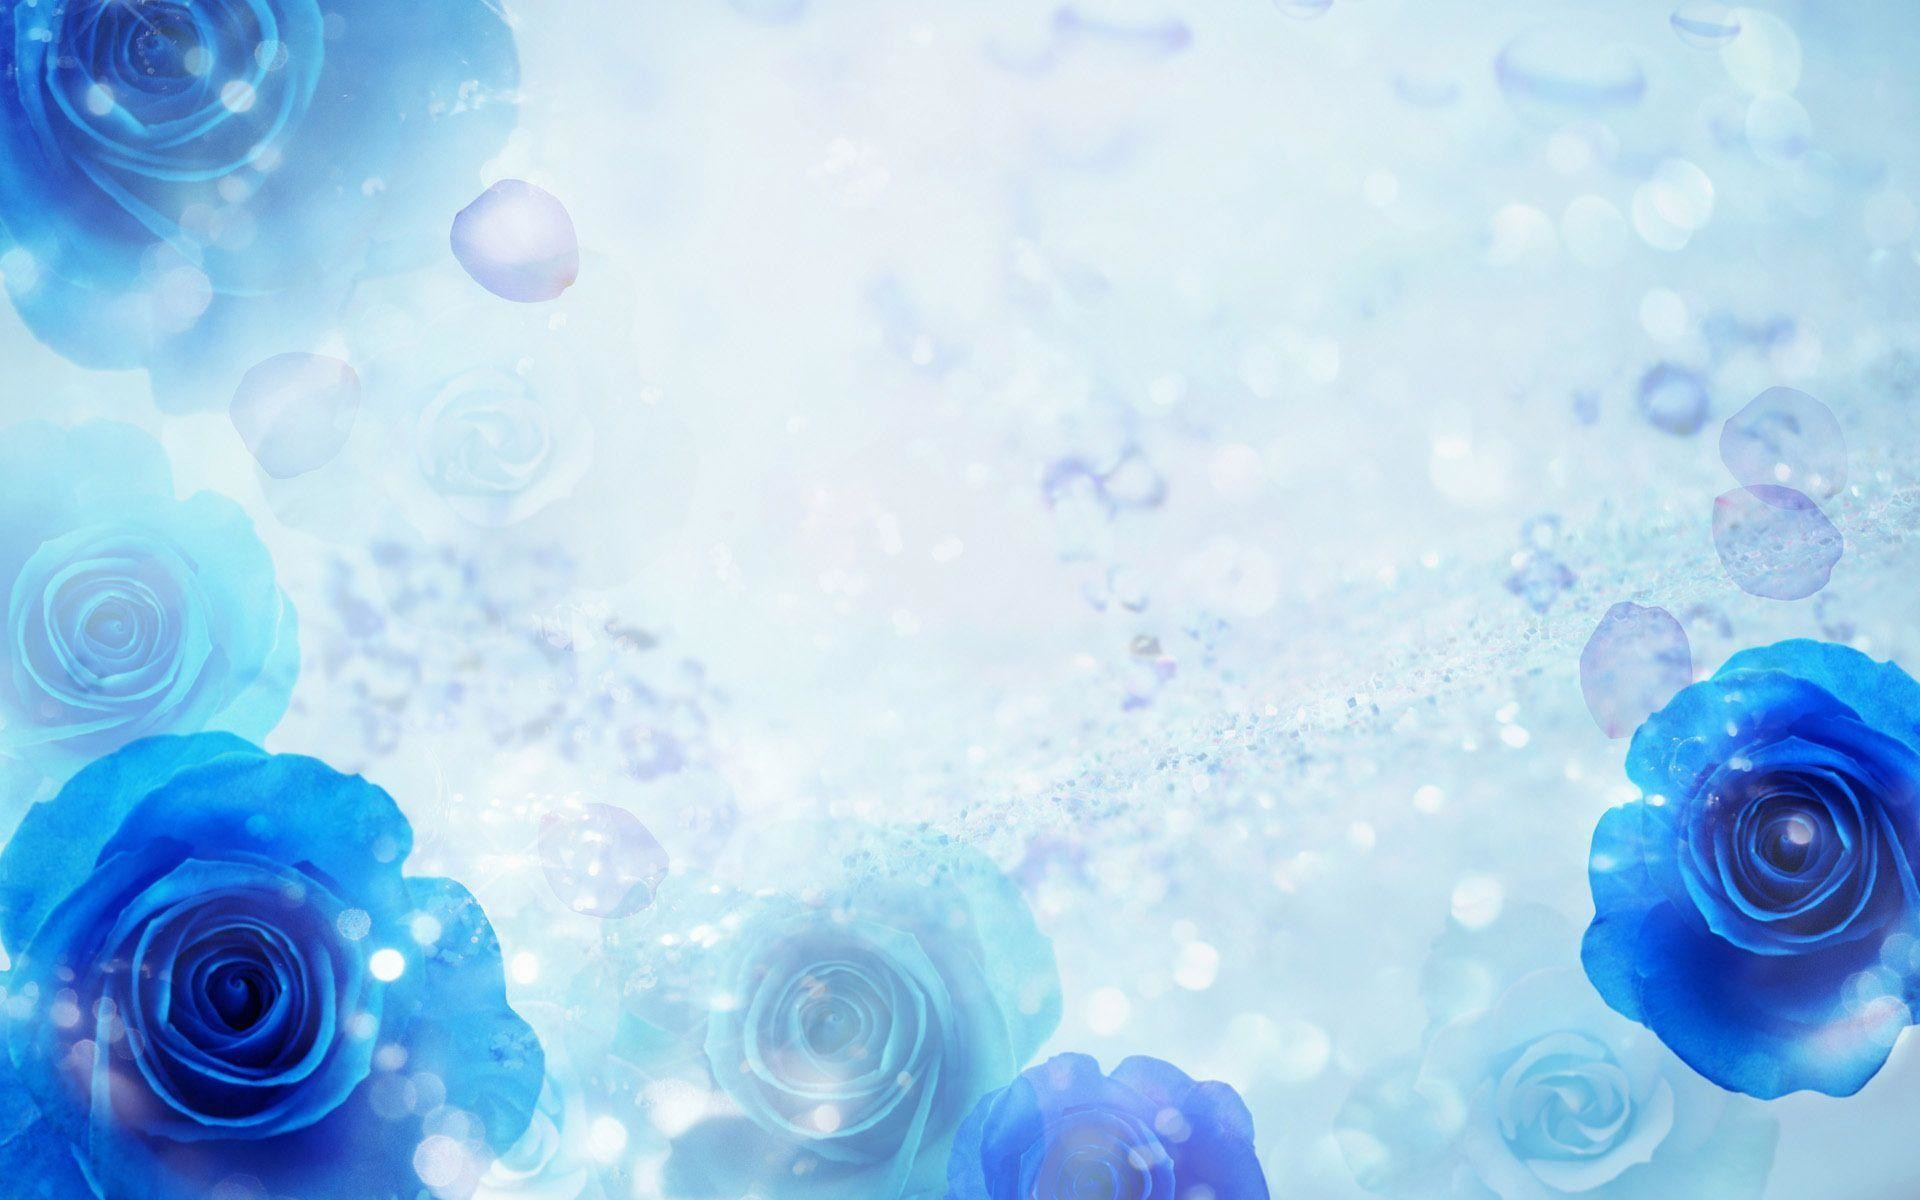 1920x1200 Wallpapers For Blue Roses Wallpaper